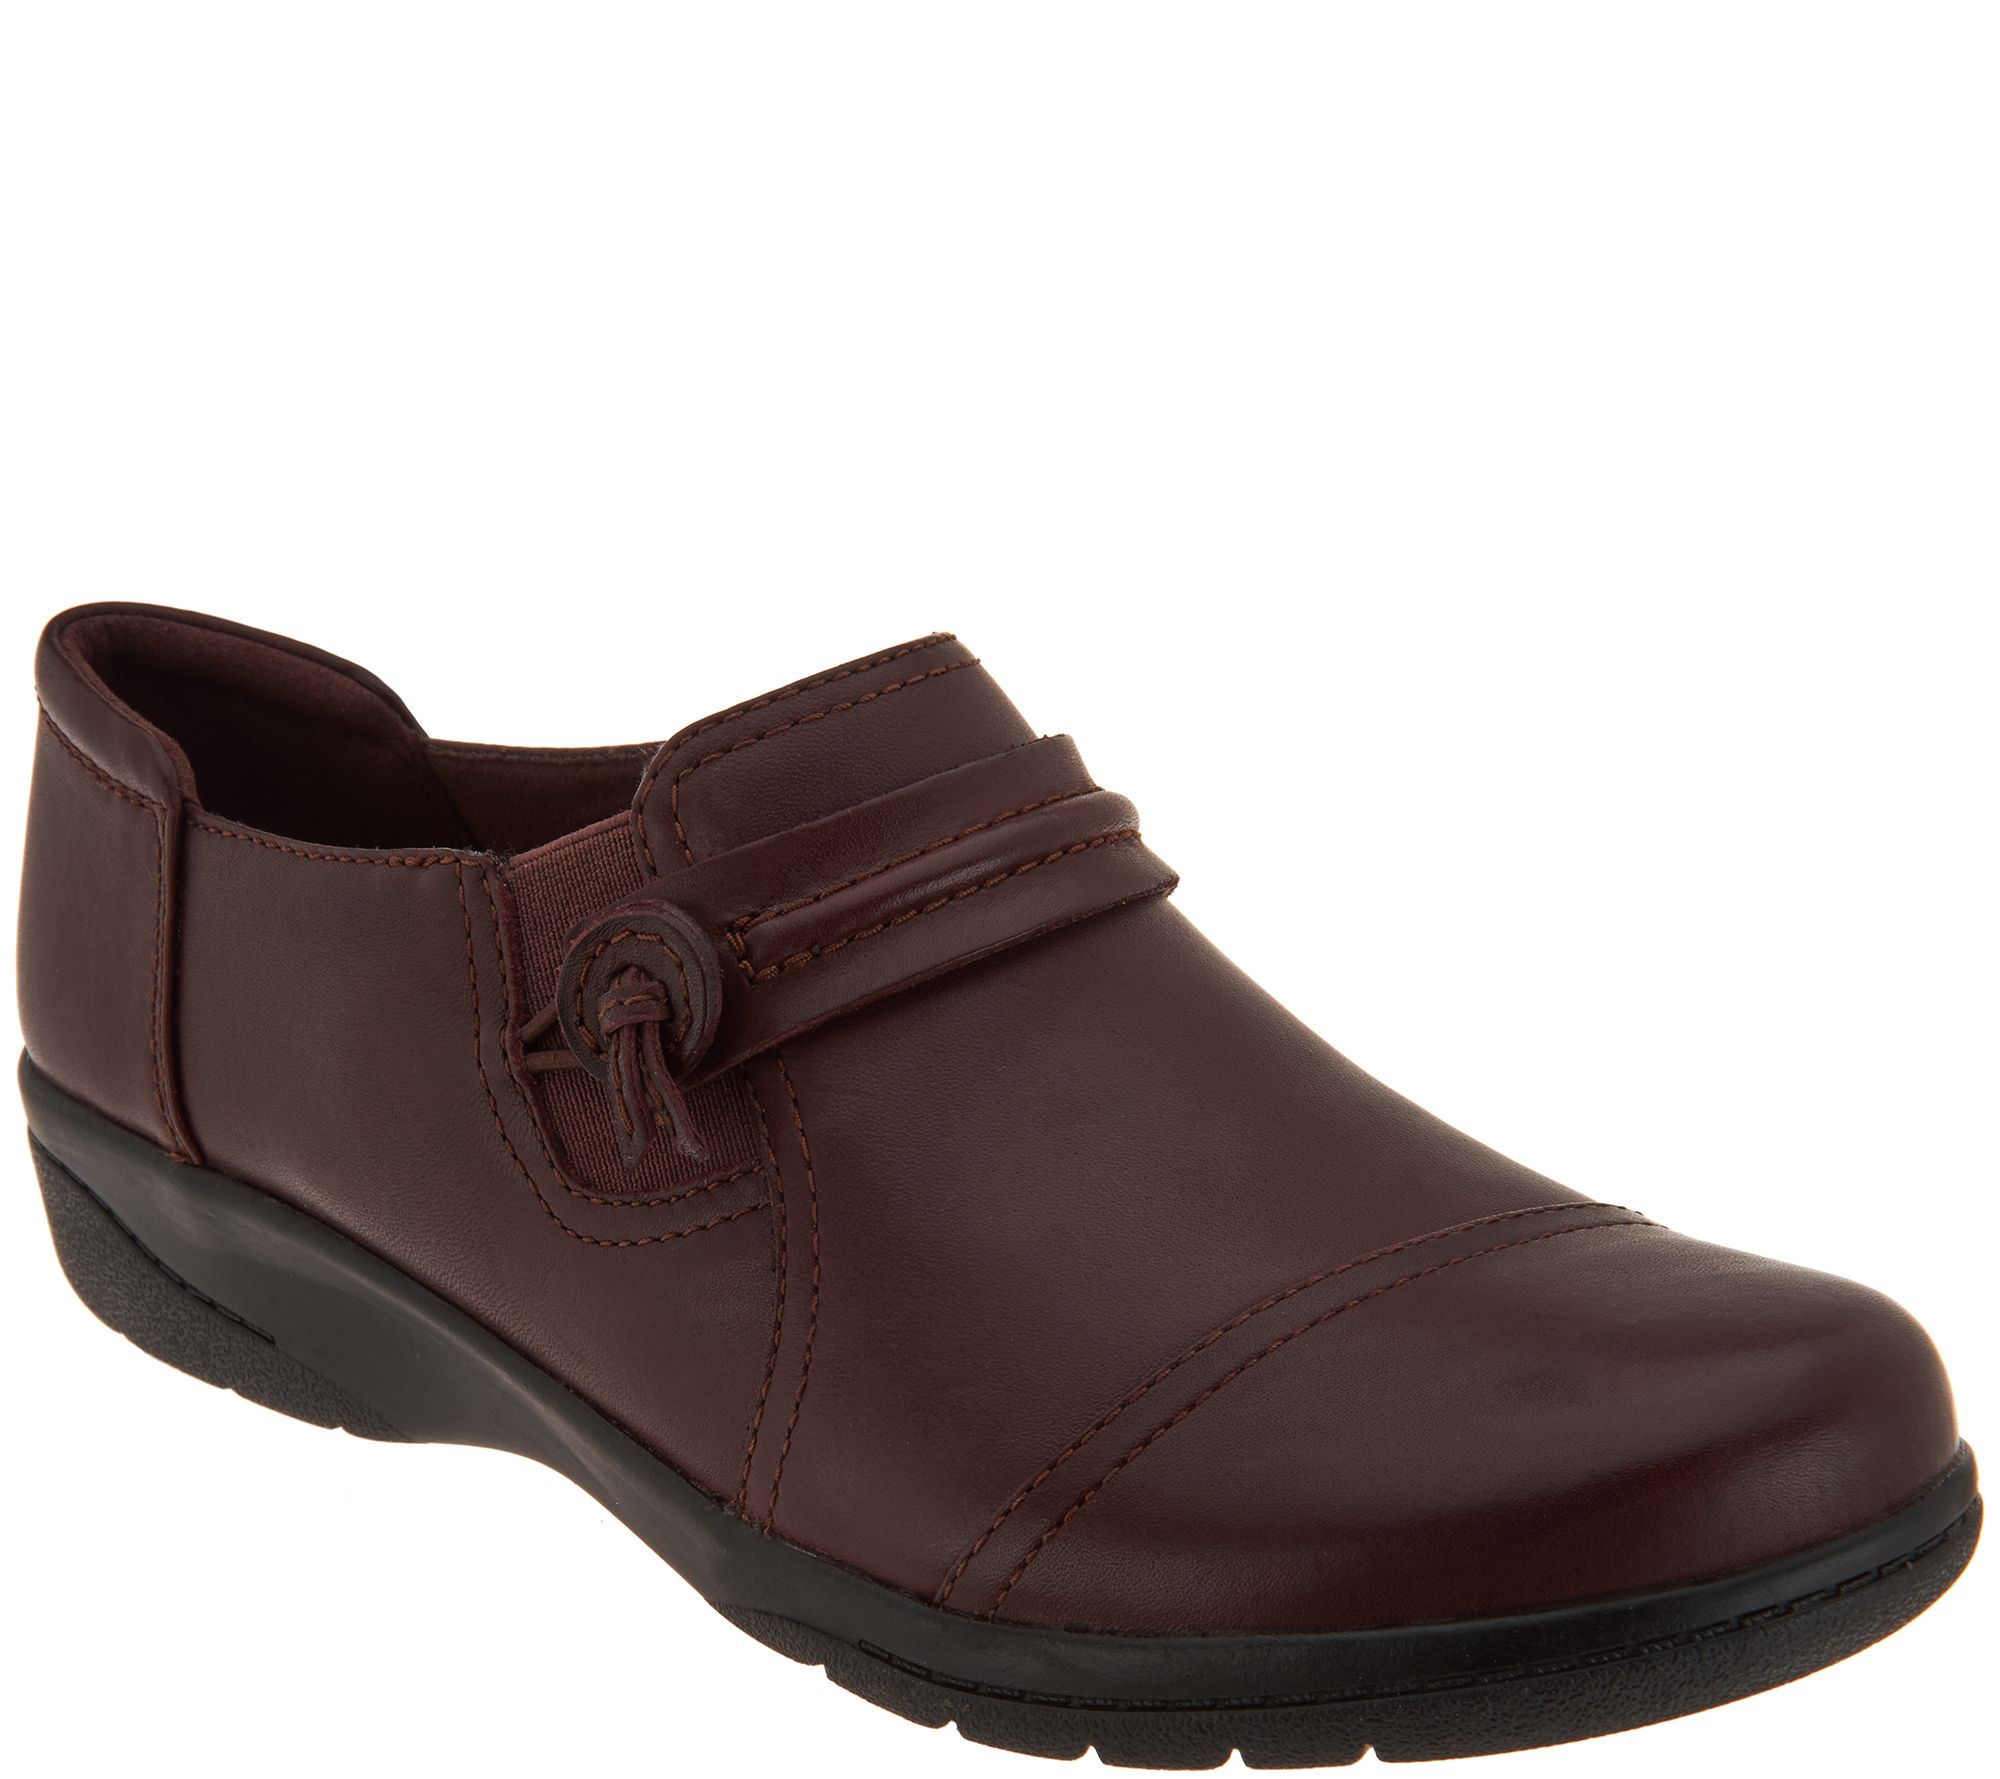 a2206332 Clarks Collection Leather Slip-on Shoes - Cheyn Madi — QVC.com